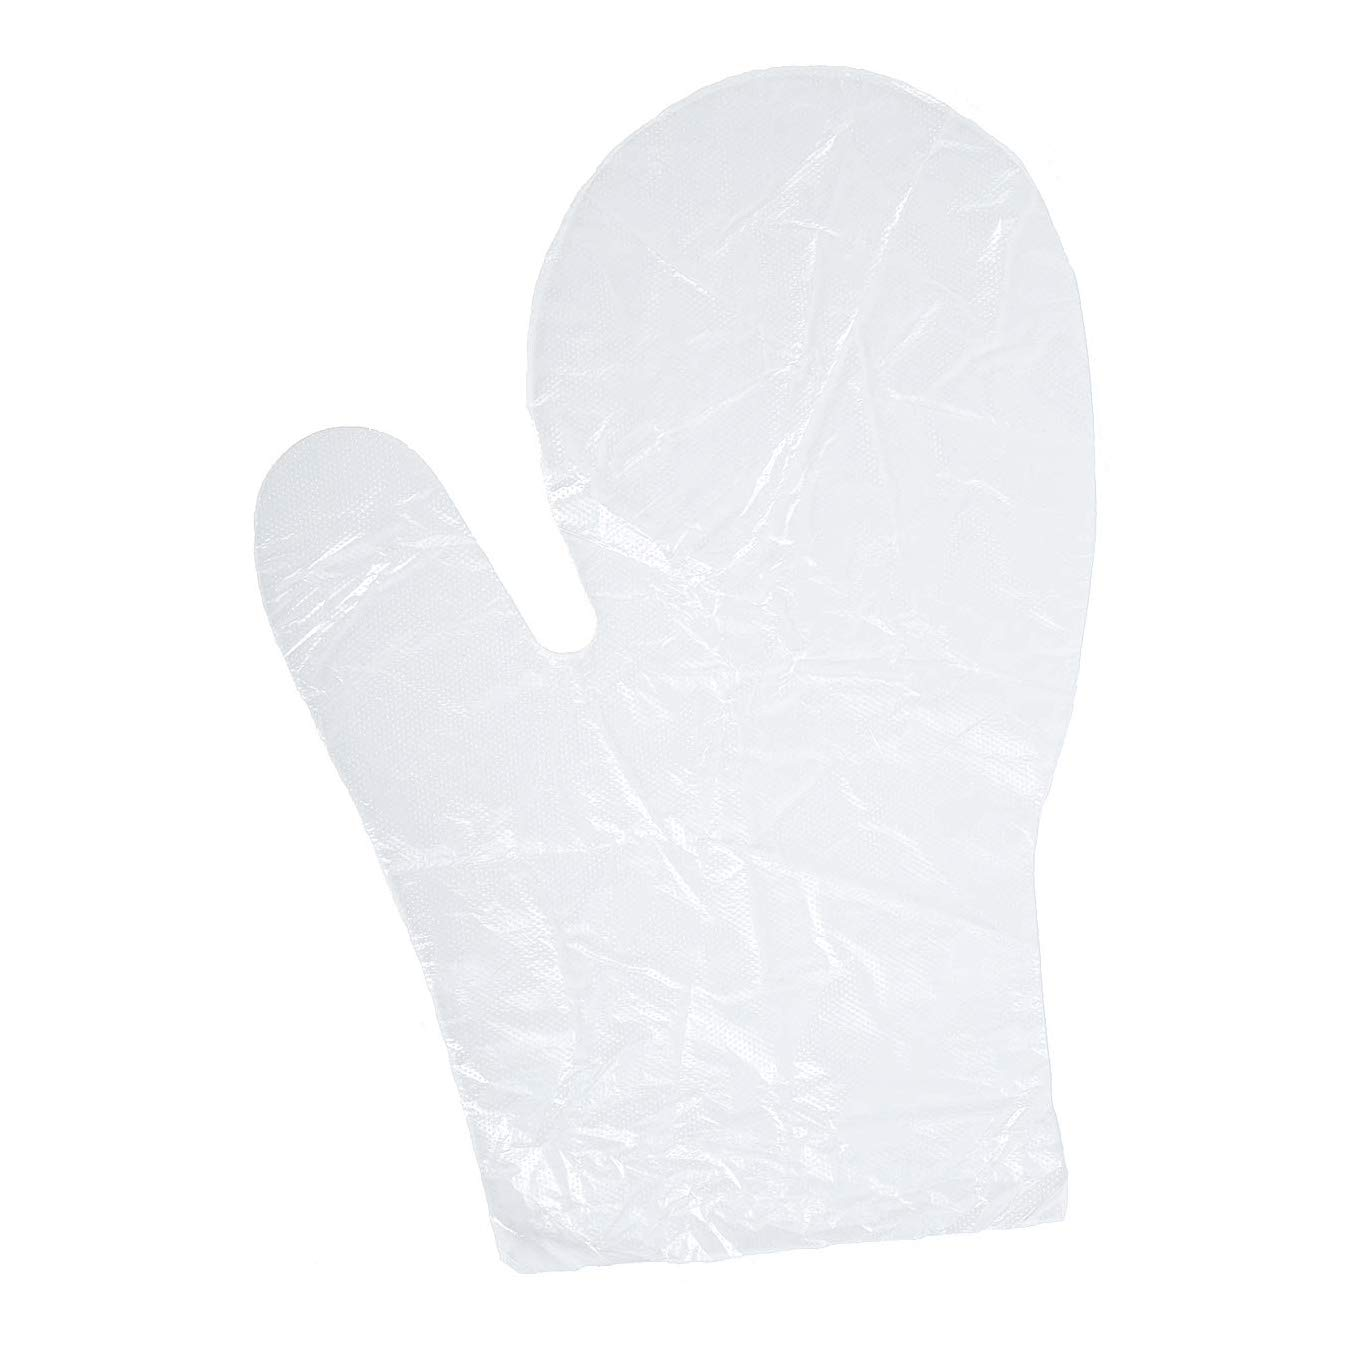 Daxwell Poly Mitts (Not Gloves), Embossed, One Size Fits All, Clear, F10003429 (Case of 5,000, 10 Boxes of 500)